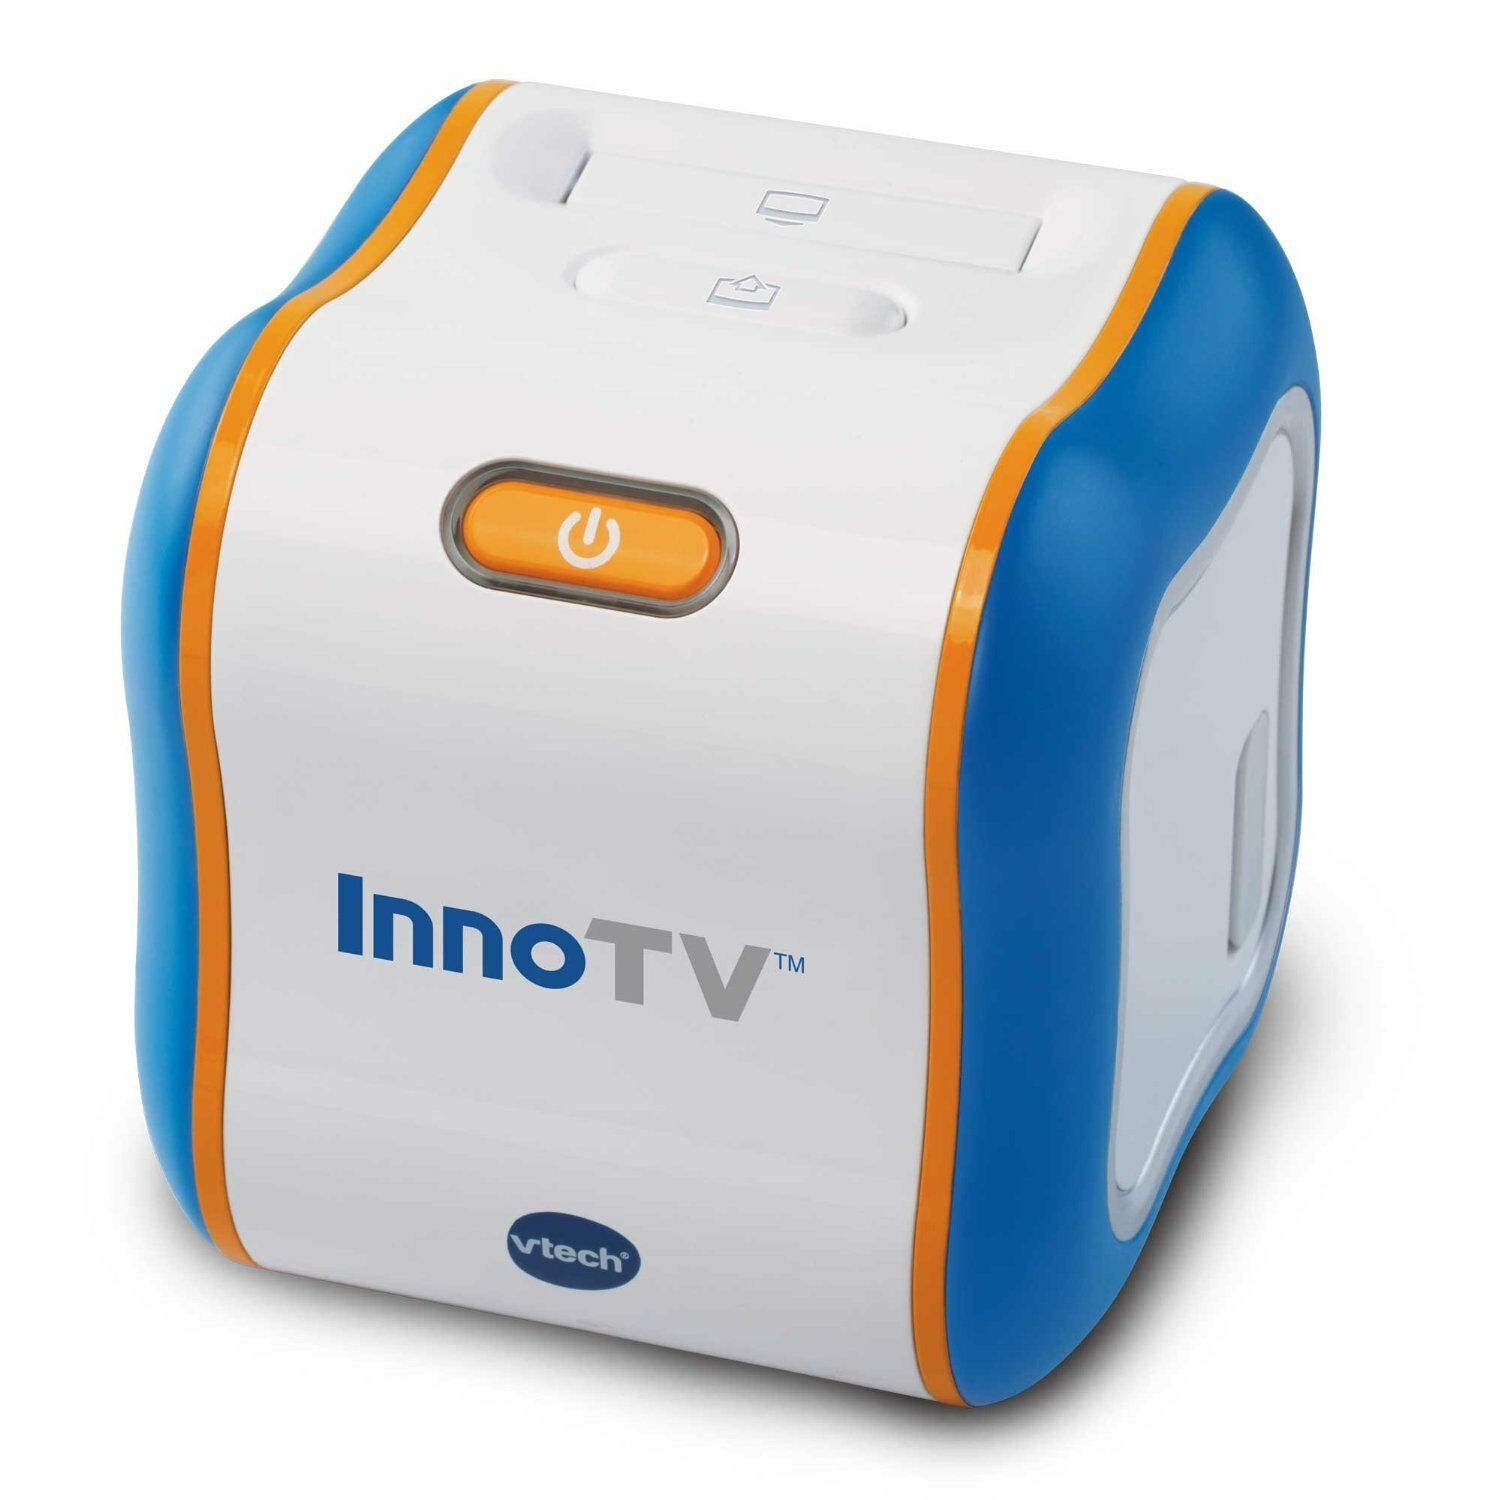 VTech Inno TV Plug And Play Game Consoles Kids Education Gaming BRAND NEW